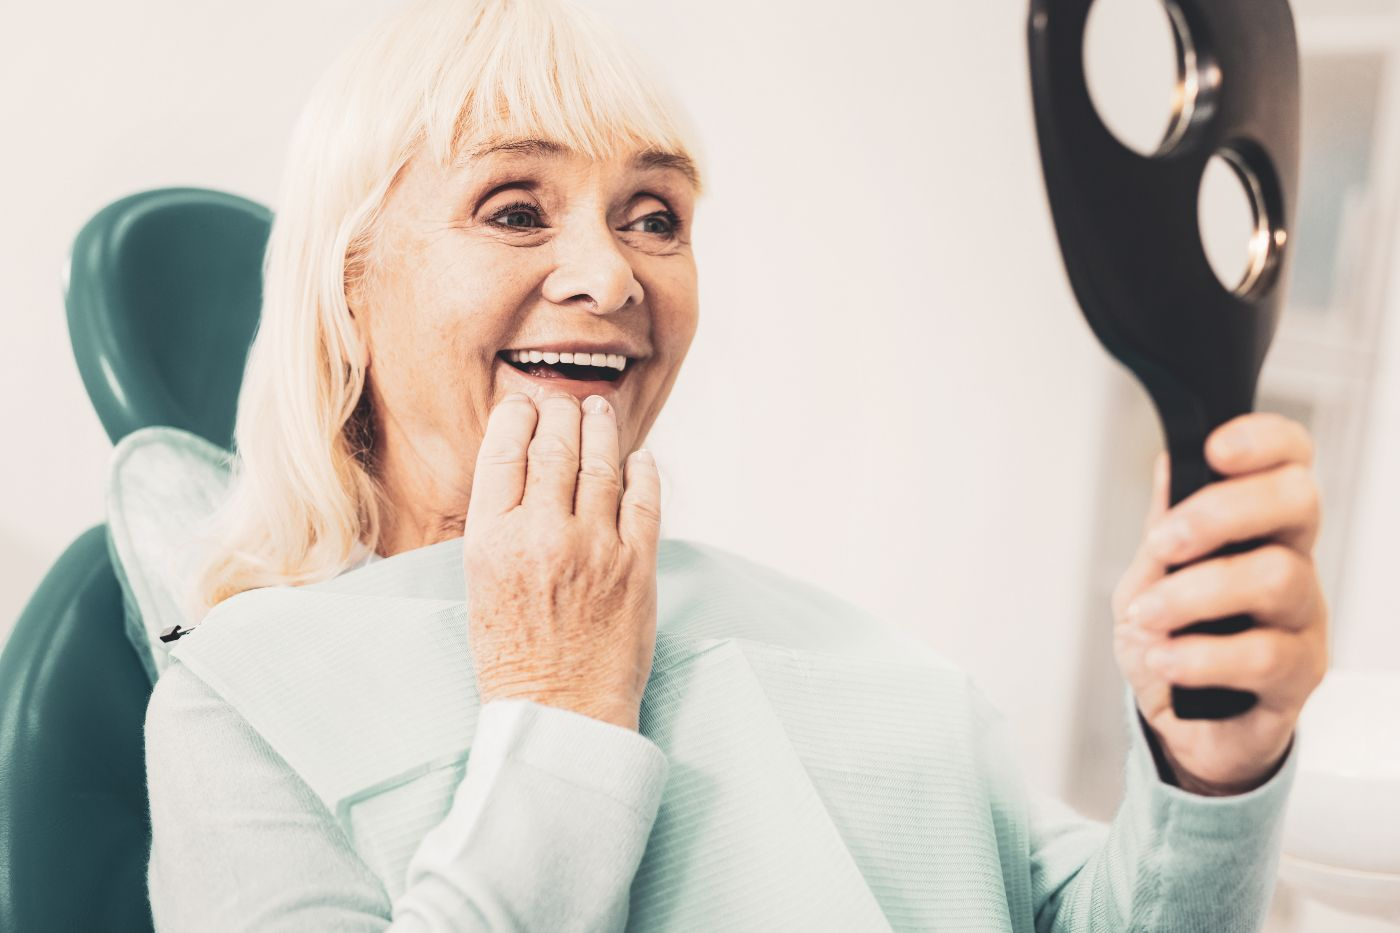 Woman looks at her dentures